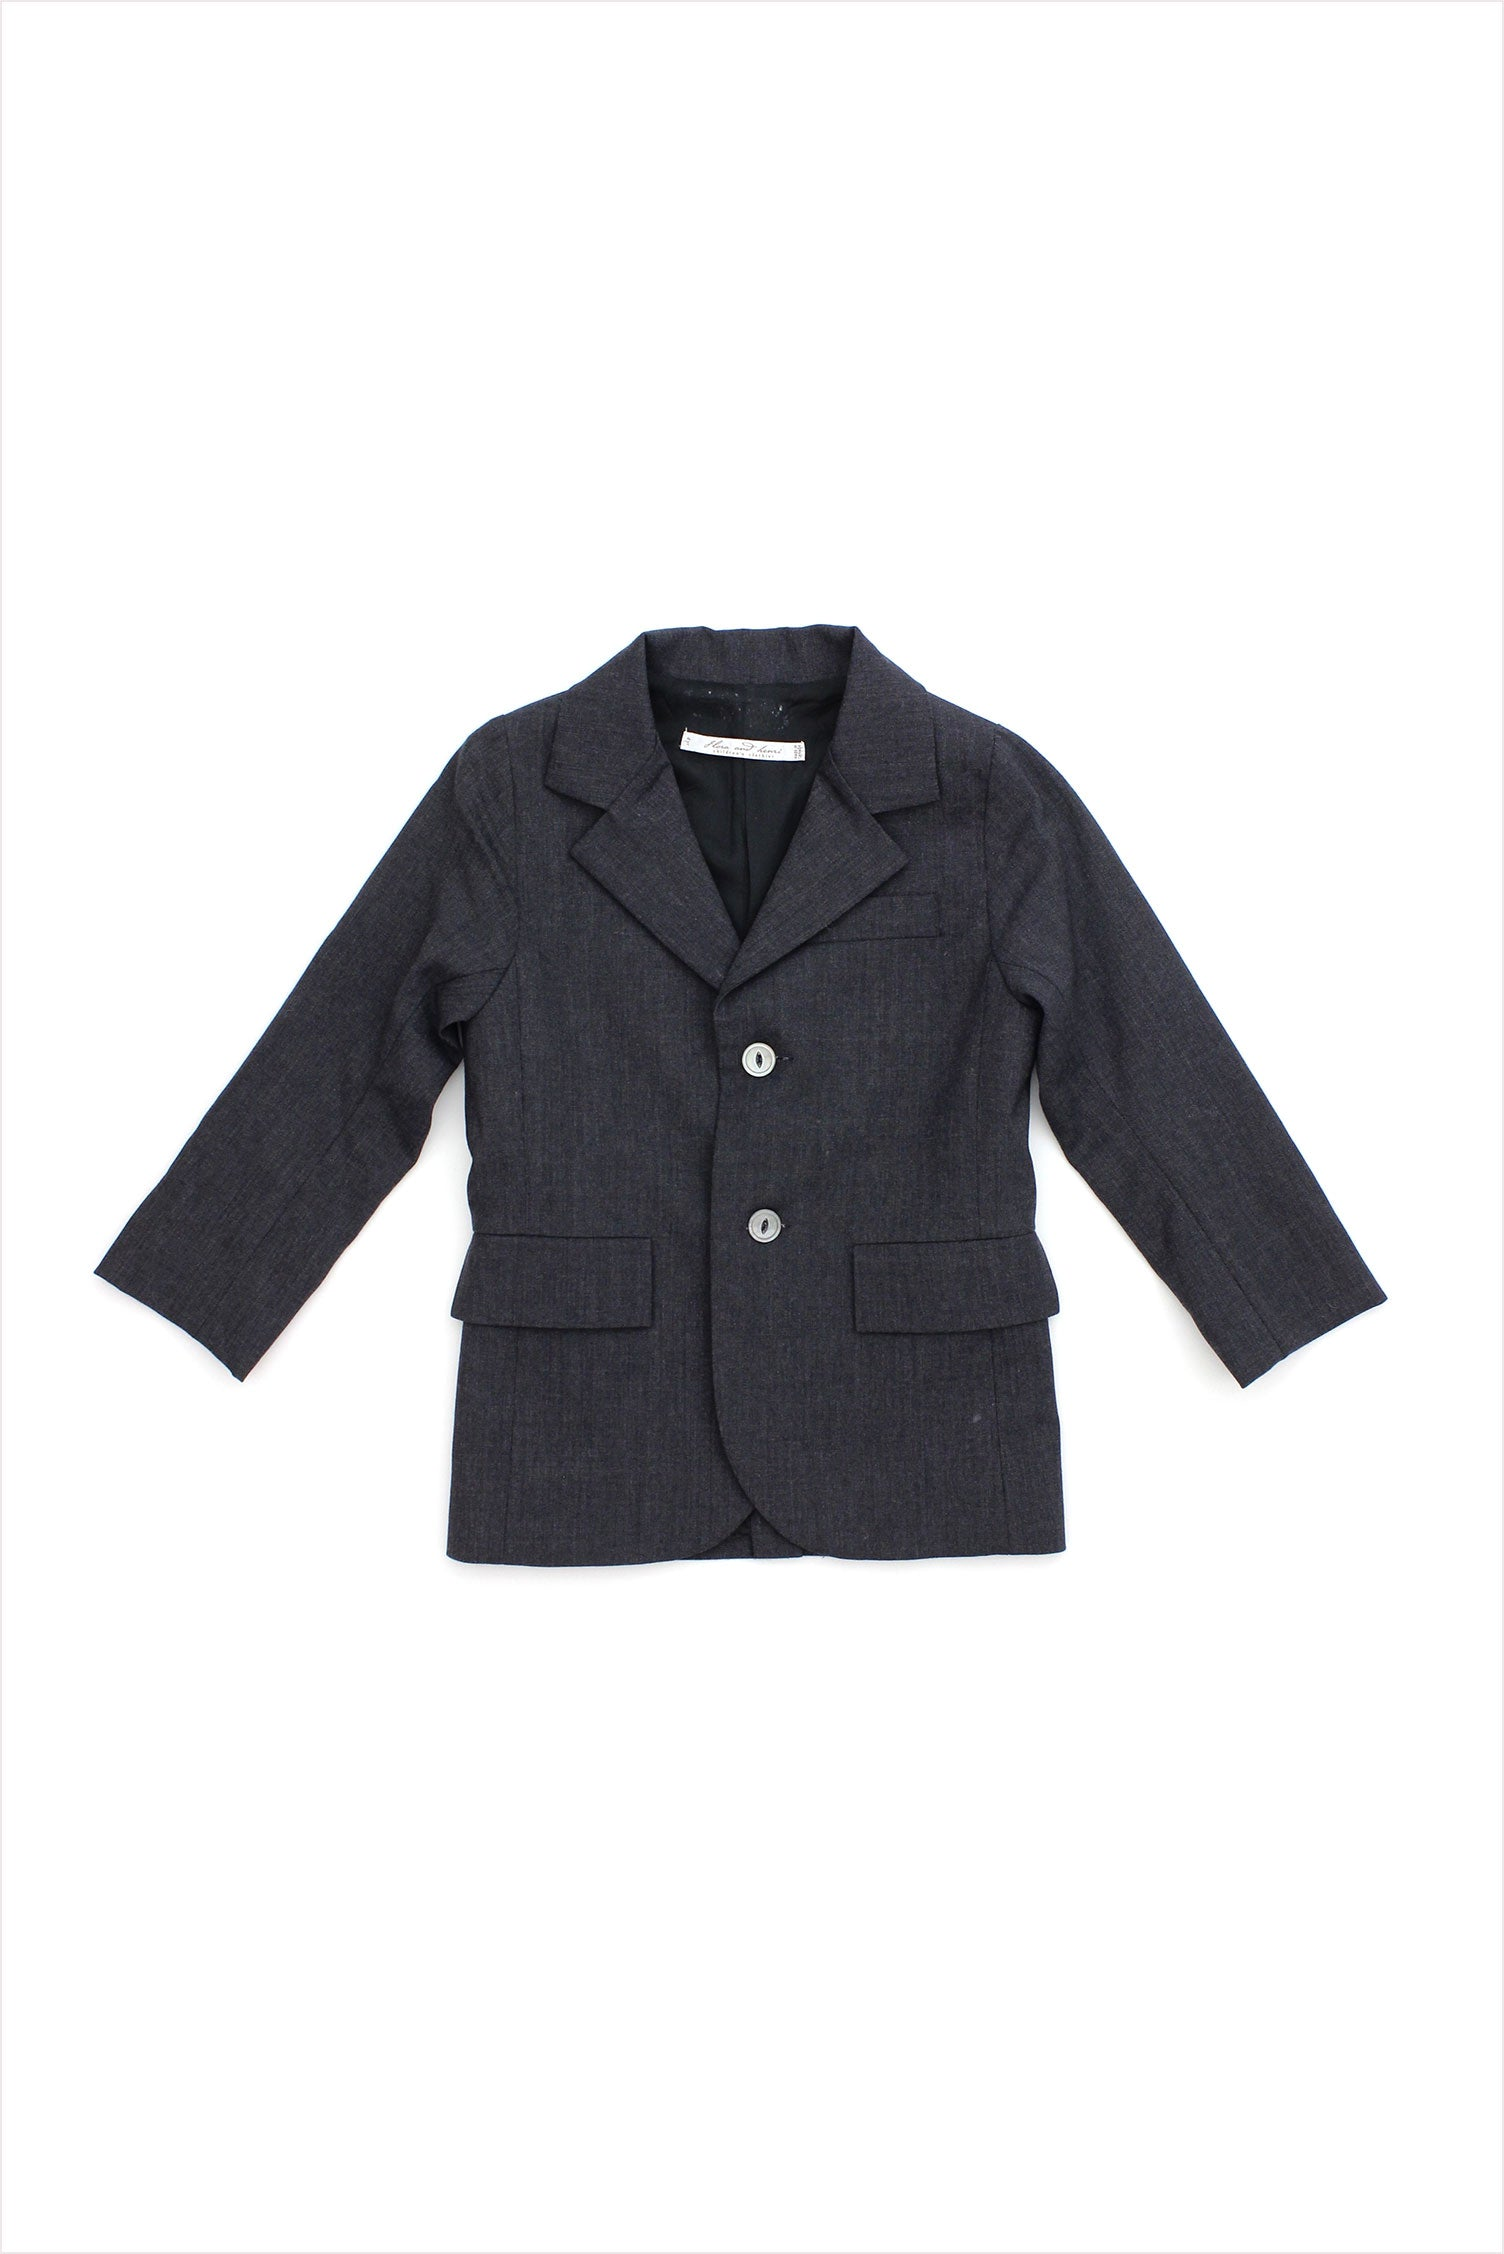 Sample Sale Dress Jacket 4year Charcoal